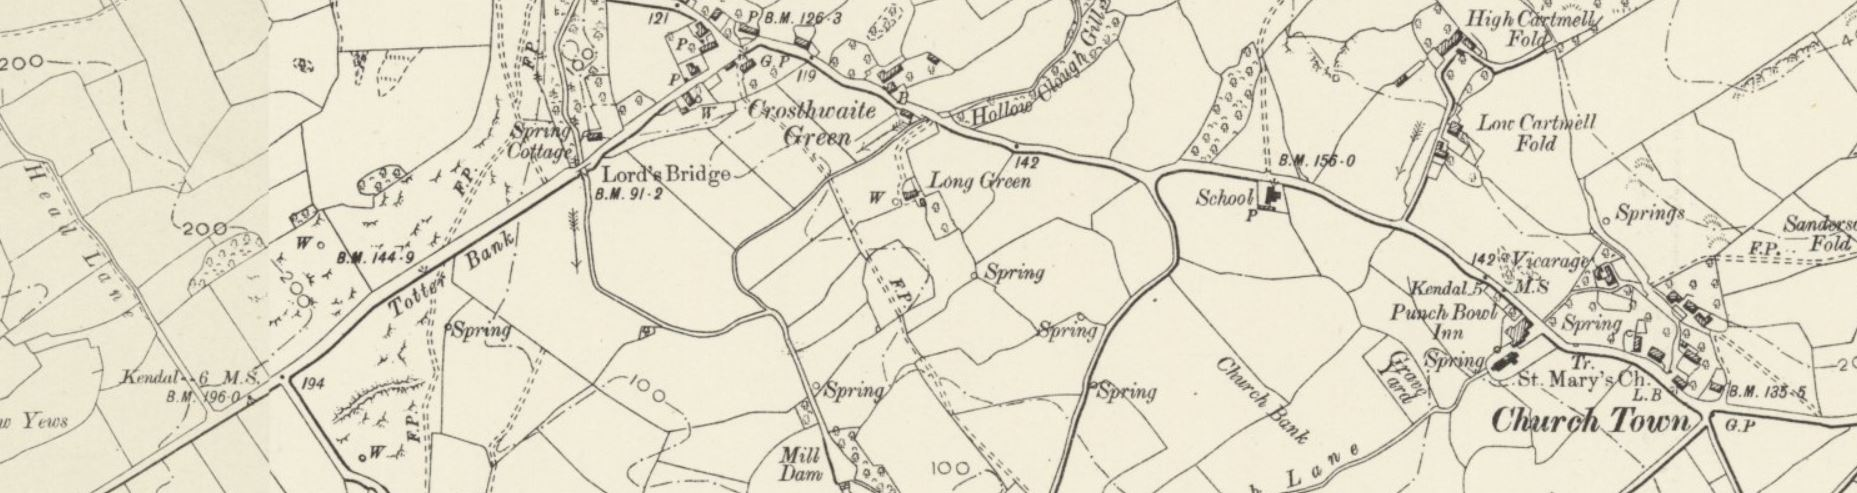 Archive OS map of Crosthwaite